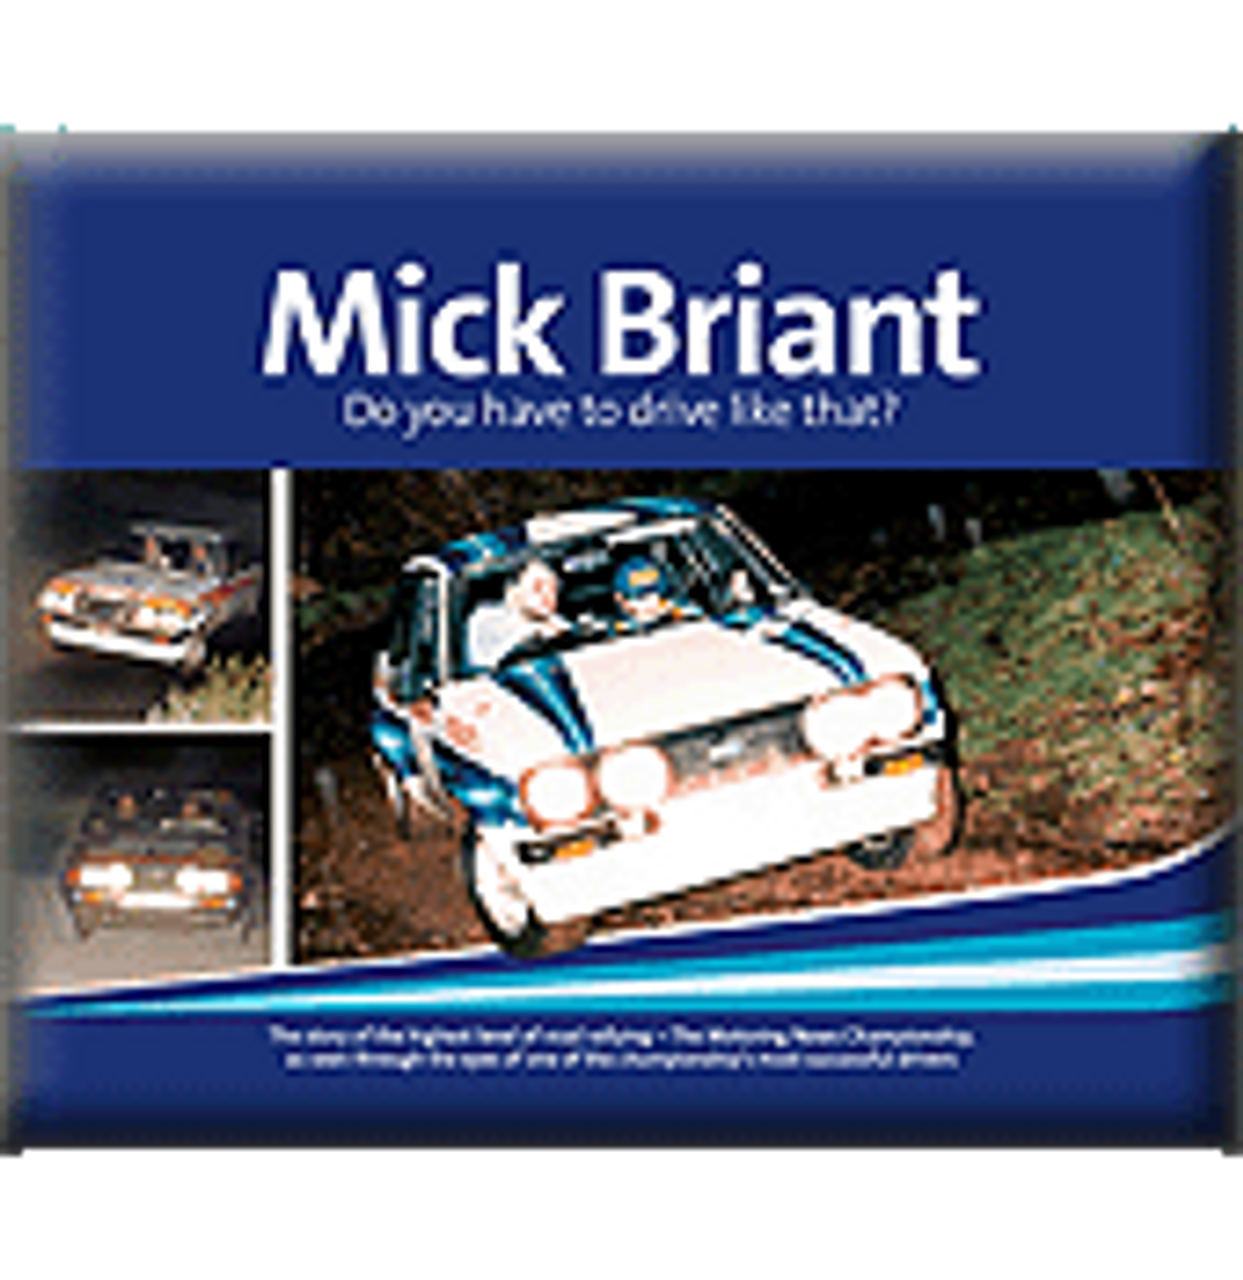 Mick Briant's 'Do You Have To Drive Like That'